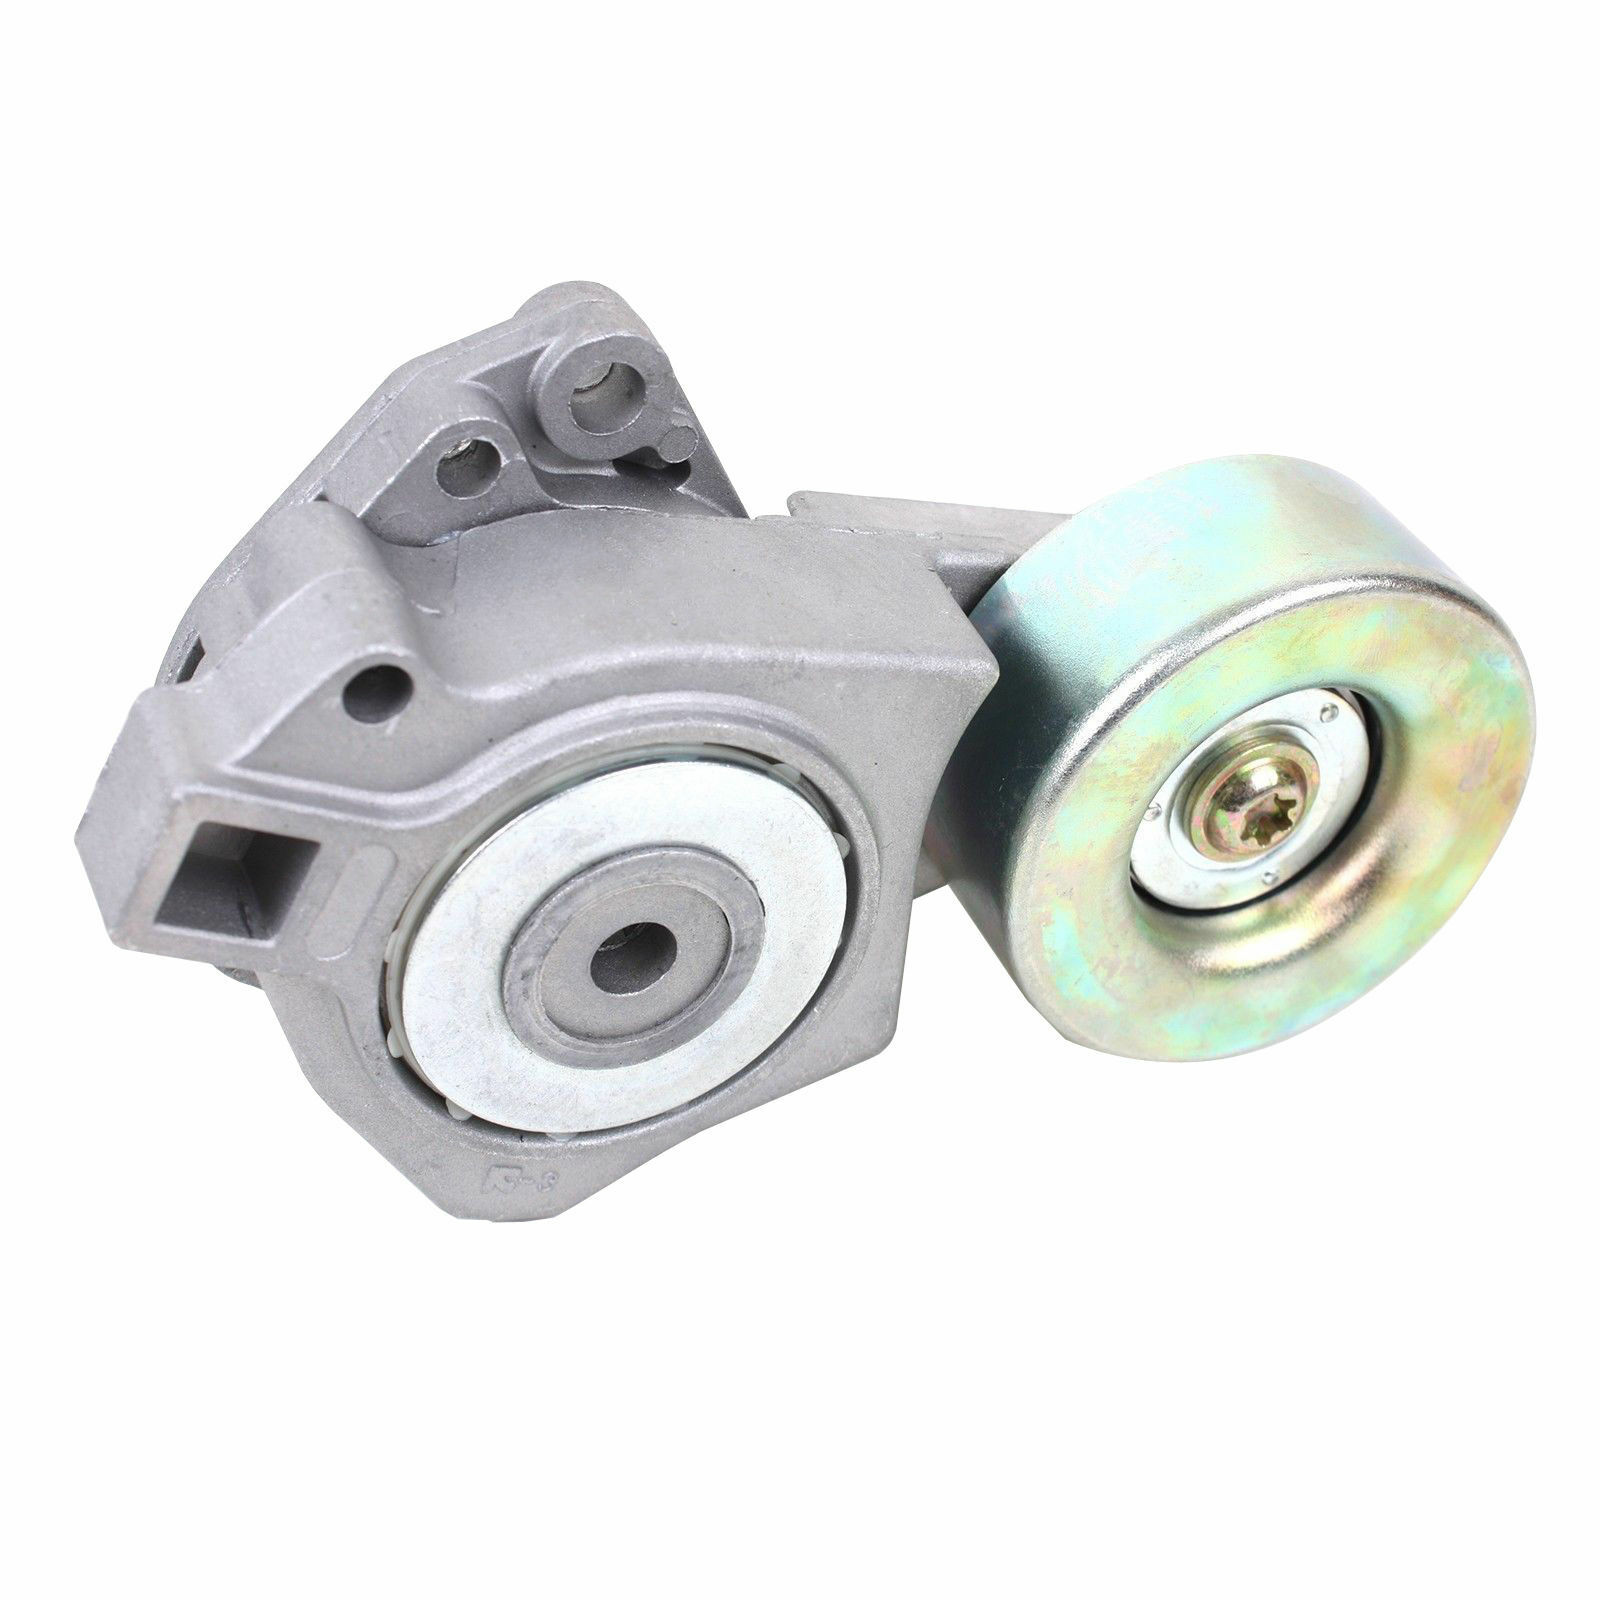 Drive Belt Tensioner For Mitsubishi Pajero V6 Nm Np 35l 6g74 S4 Ns 2002 Montero Pulley Item Number Tnmb1aca 1 Package1x